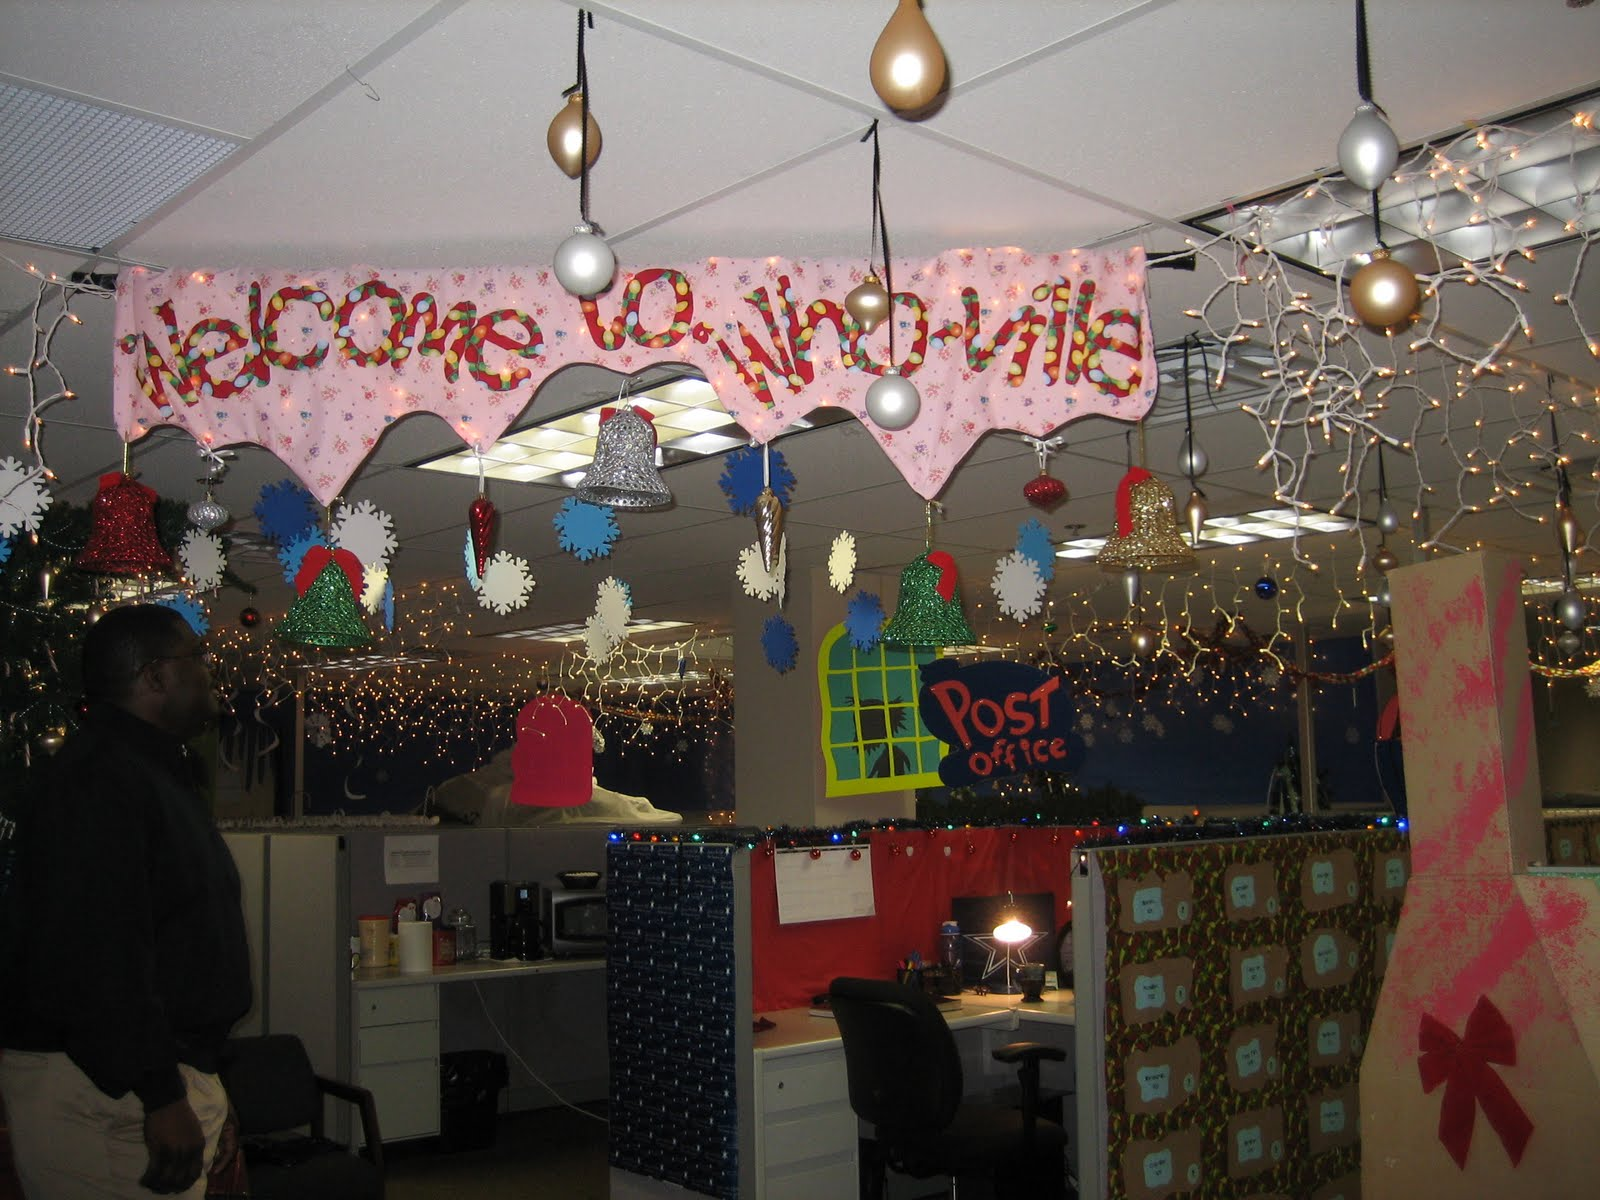 christmas office decorating contest - How The Grinch Stole Christmas Decorating Ideas